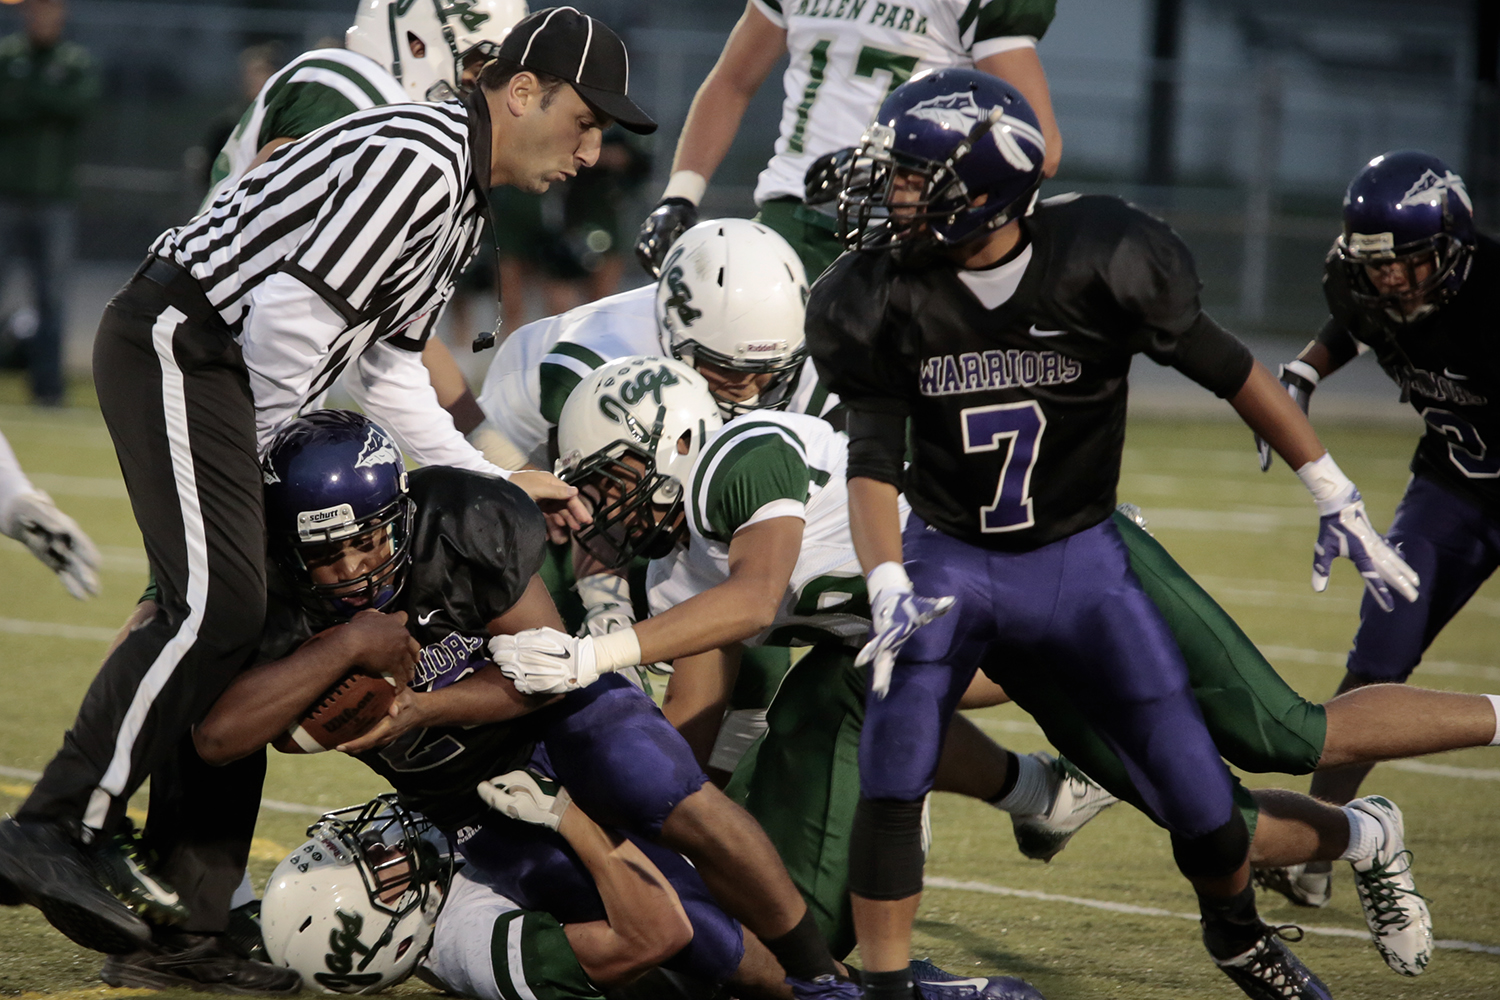 Woodhaven's Niko France (23/QB) is tackled into a game official during the Woodhaven vs. Allen Park football game on Friday, Sept. 12, 2014 at Woodhaven High School in Brownstown. Tim Galloway/Special for the DFP